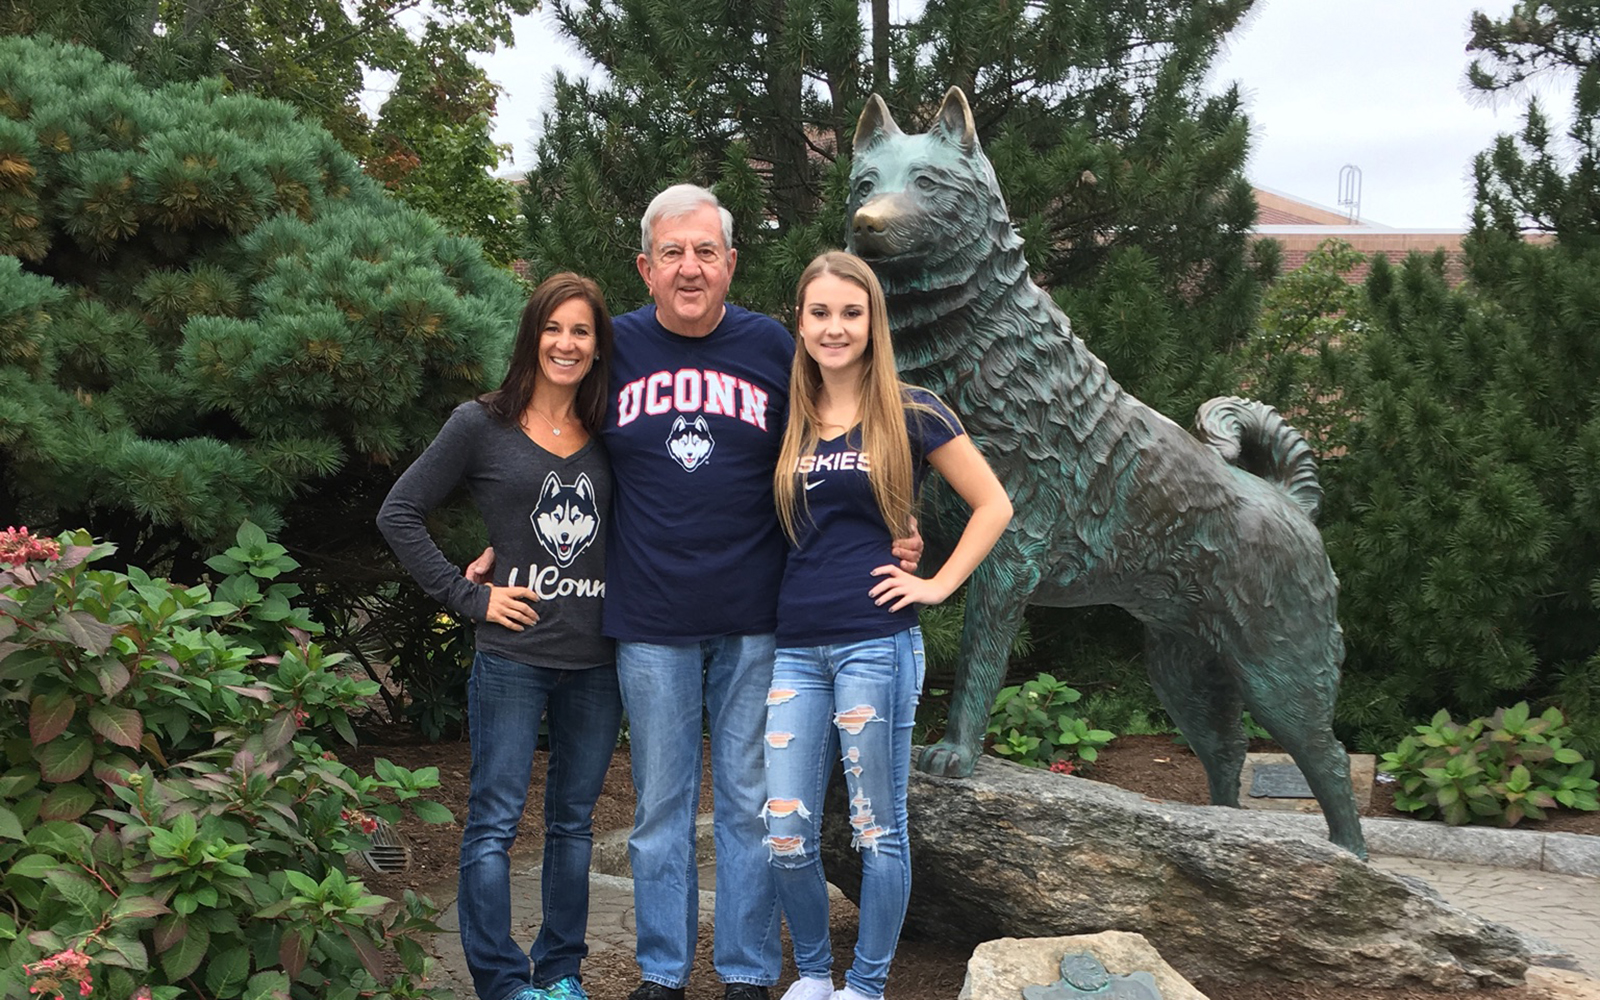 The Fochi family has a long and proud connection to the University of Connecticut because they believe it provides a great education for the money. Pictured above is alumnus Bill Fochi '63 with his daughter, Kerry Fochi Sanders '94, and his granddaughter Ashley Fochi '19. (Contributed photo).